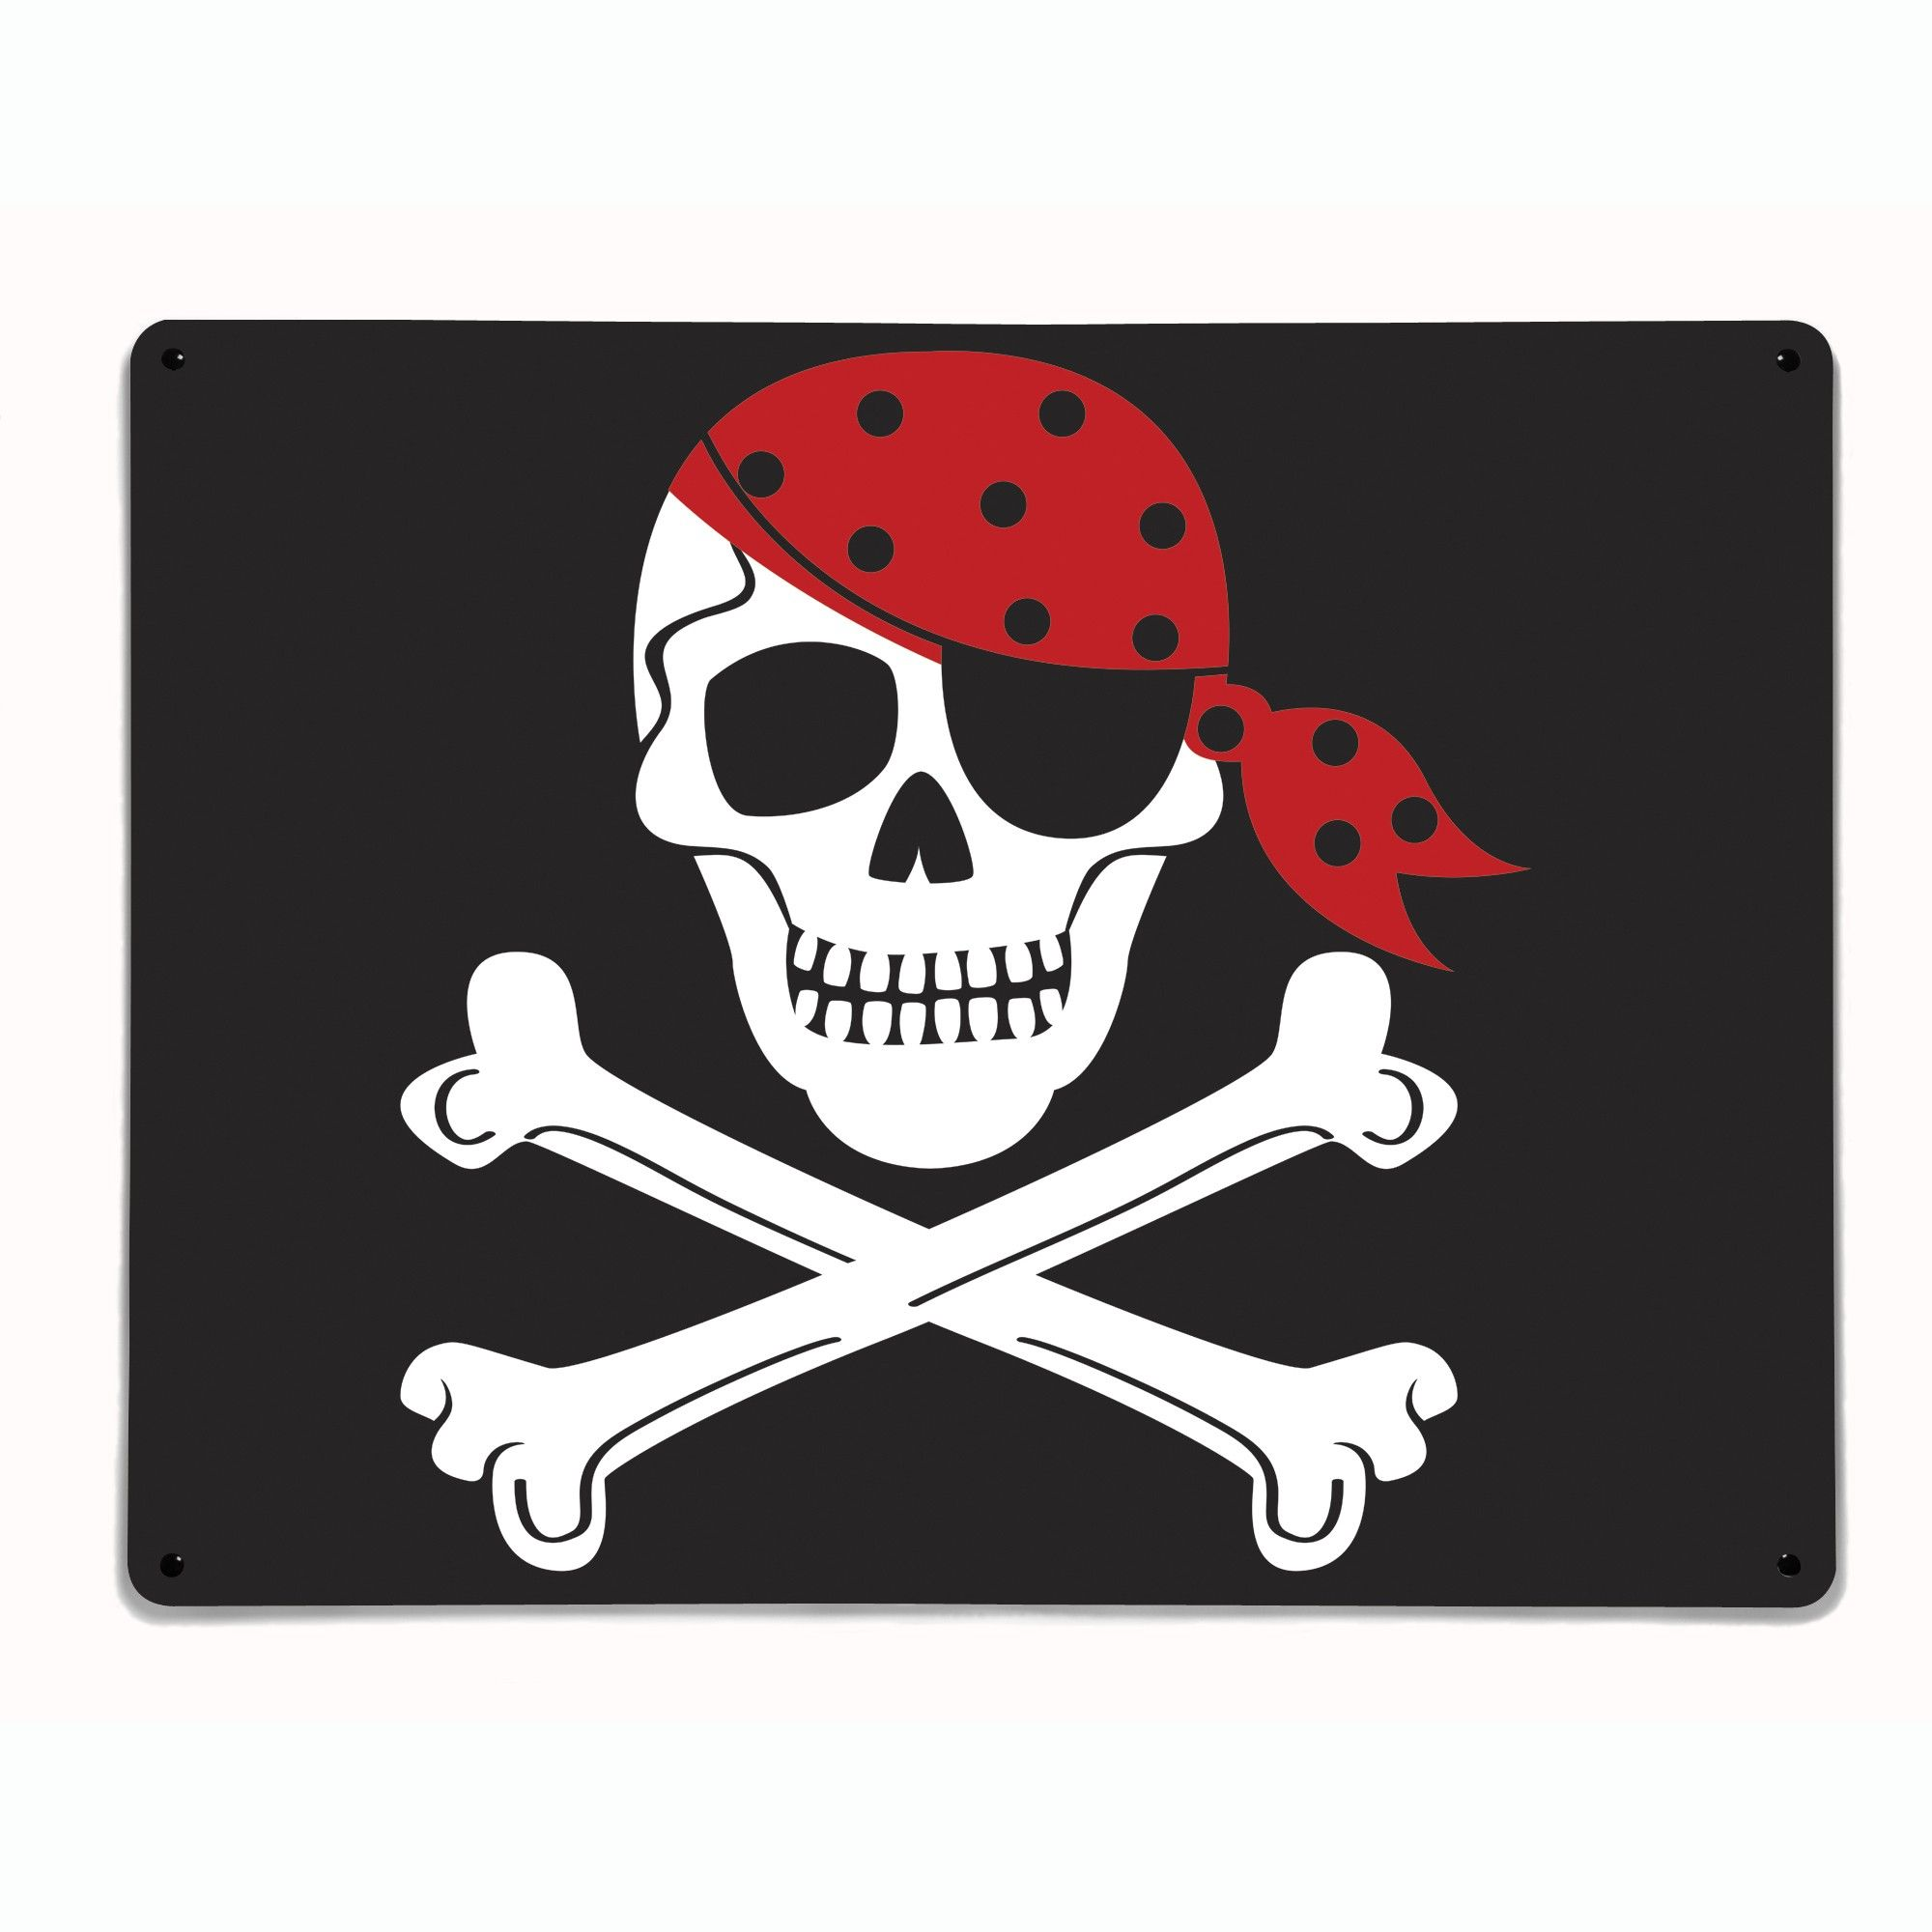 Pirate Craft Ideas For Kids Part - 38: Pirate Crafts For Kids | Craft Party Products Pirate Crafts Are Favorites  With Bones Flags